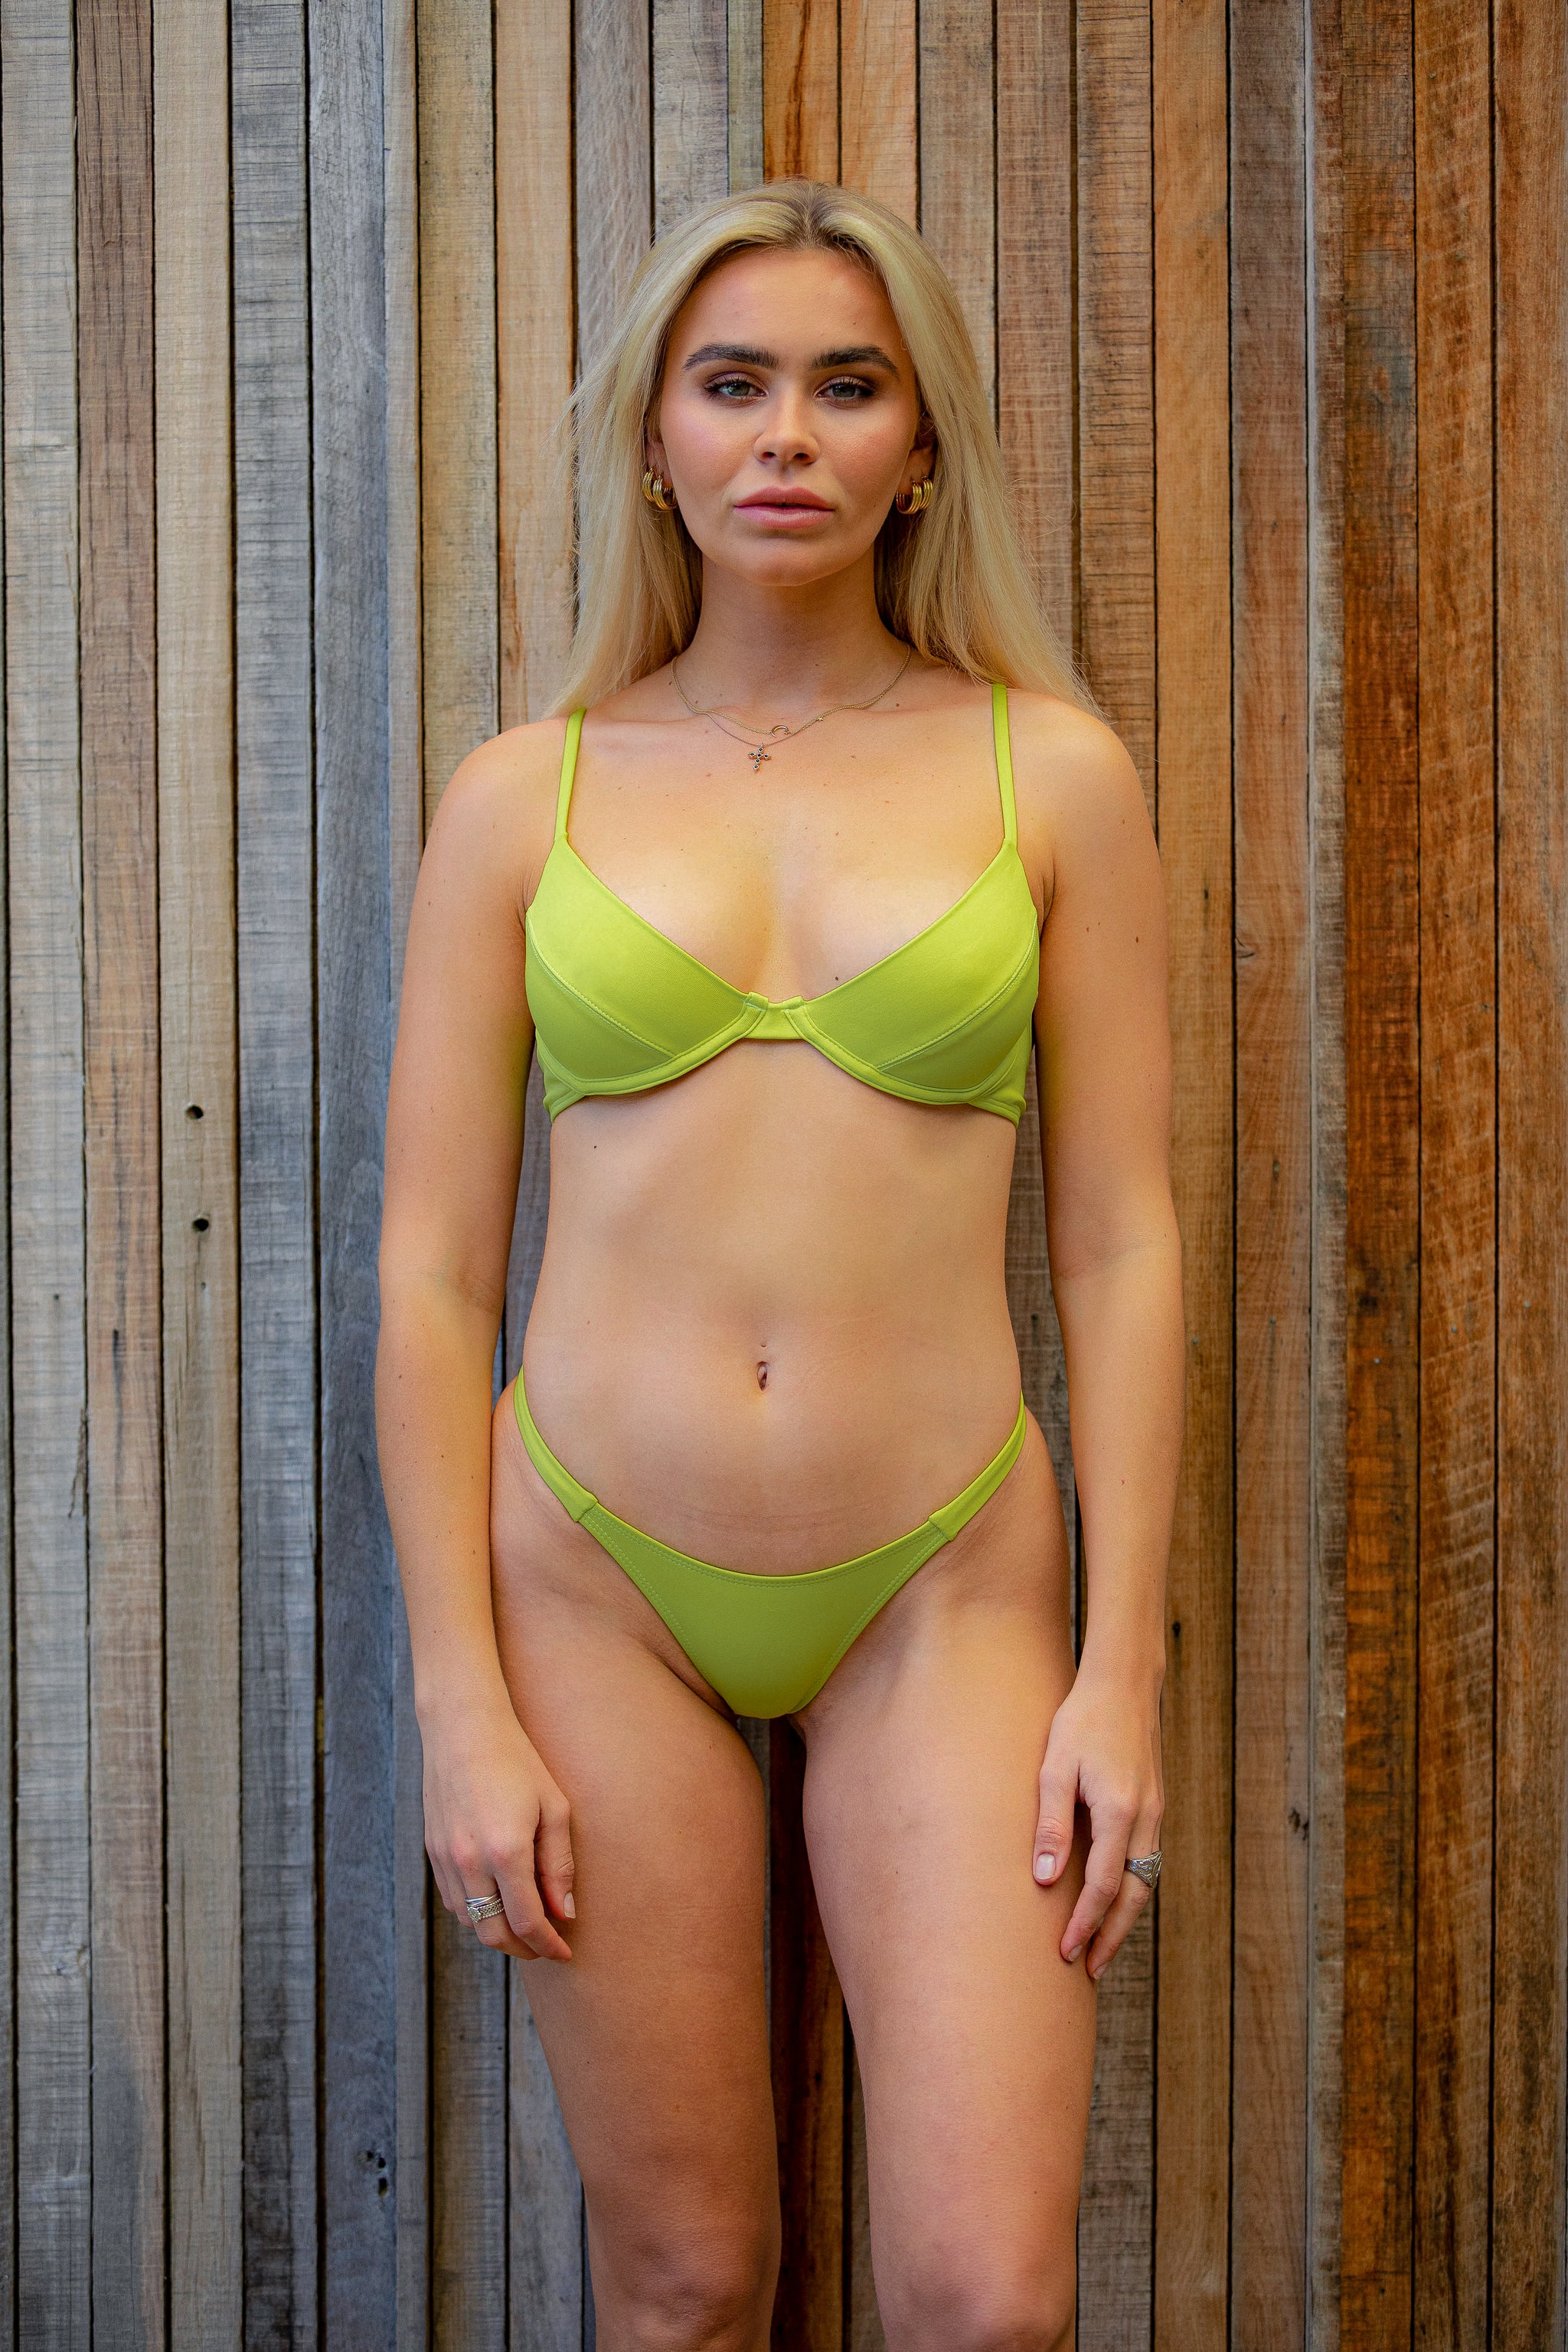 Zingy lime bra bikini top, featuring adjustable straps and underwire support. Made using sustainable and eco-friendly fabric - Amni Soul Eco®. Luxury swimwear for a better world, with better tan lines.